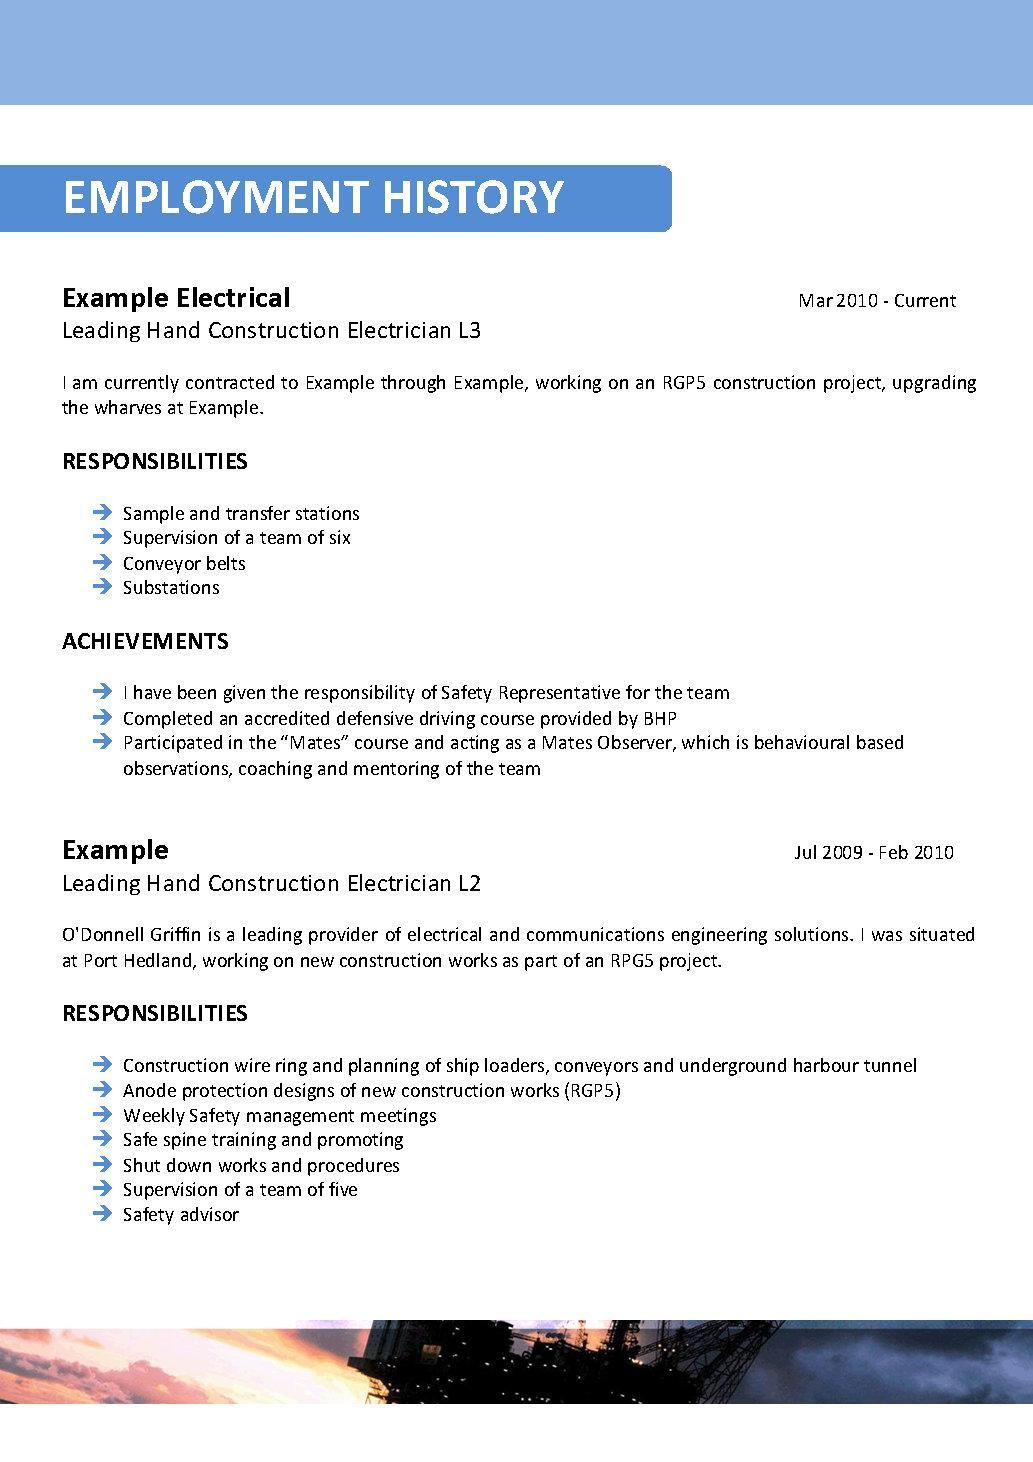 Chef Resume Sample Australia Chef Resume Sample Australia, Executive Chef  Resume Sample, Pastry Chef Resume Sample, Personal Chef Resume Sample, ...  Personal Chef Resume